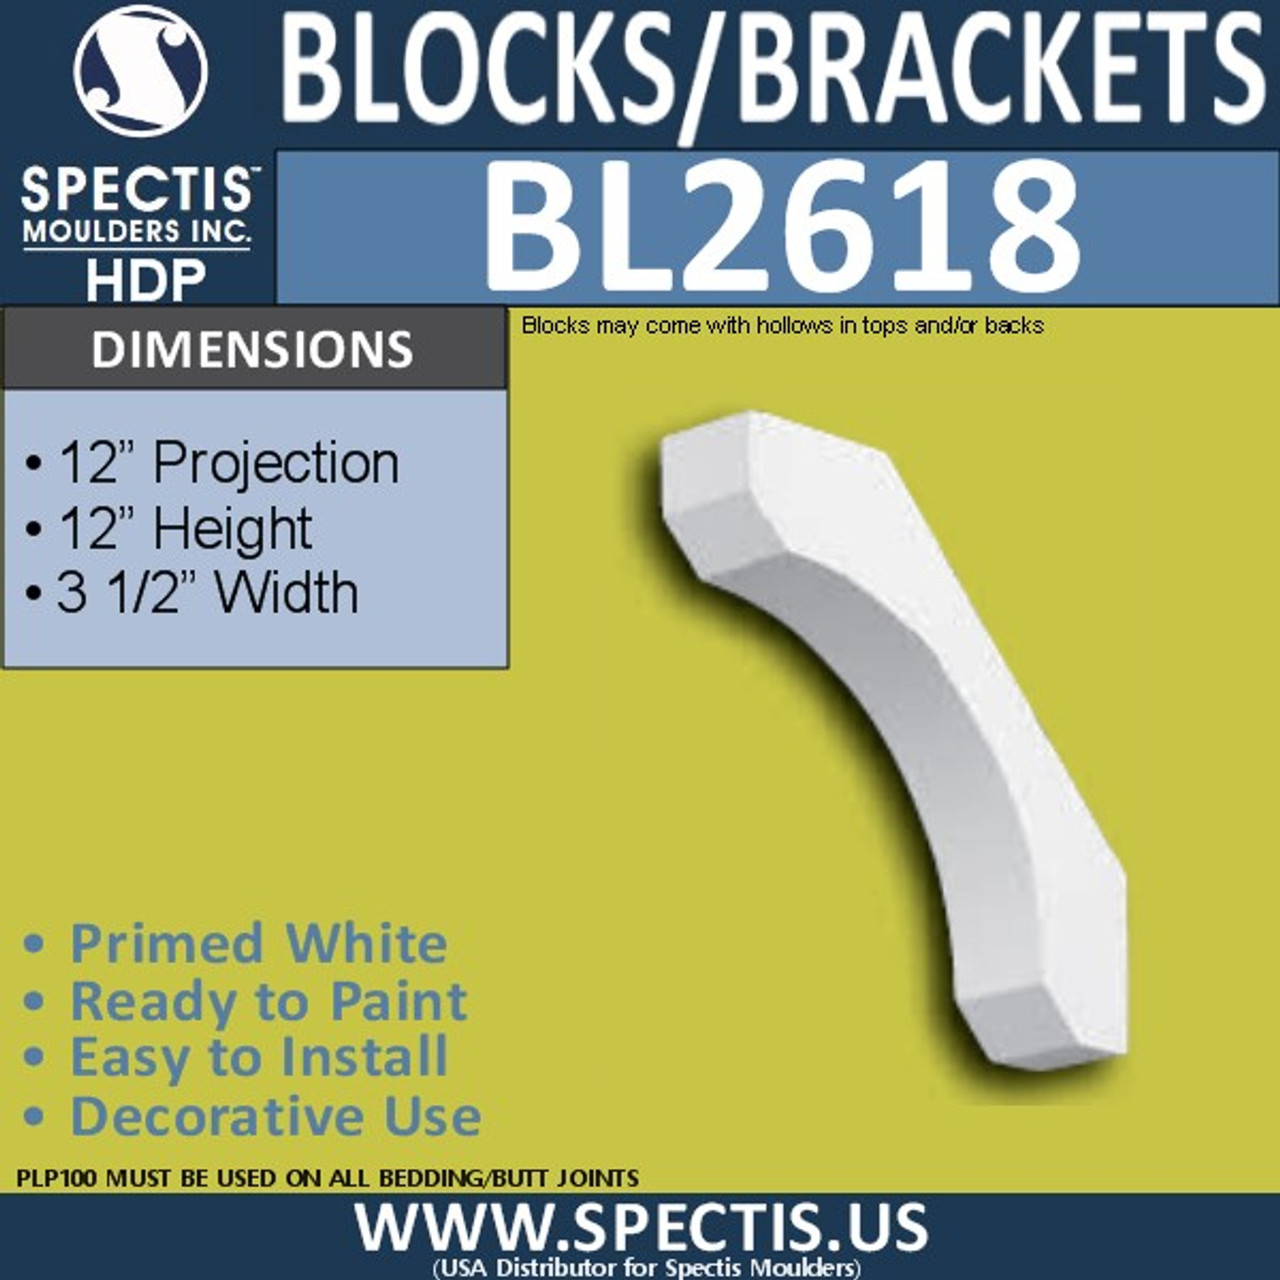 "BL2618 Eave Block or Bracket 3.5""W x 12""H x 12"" P"